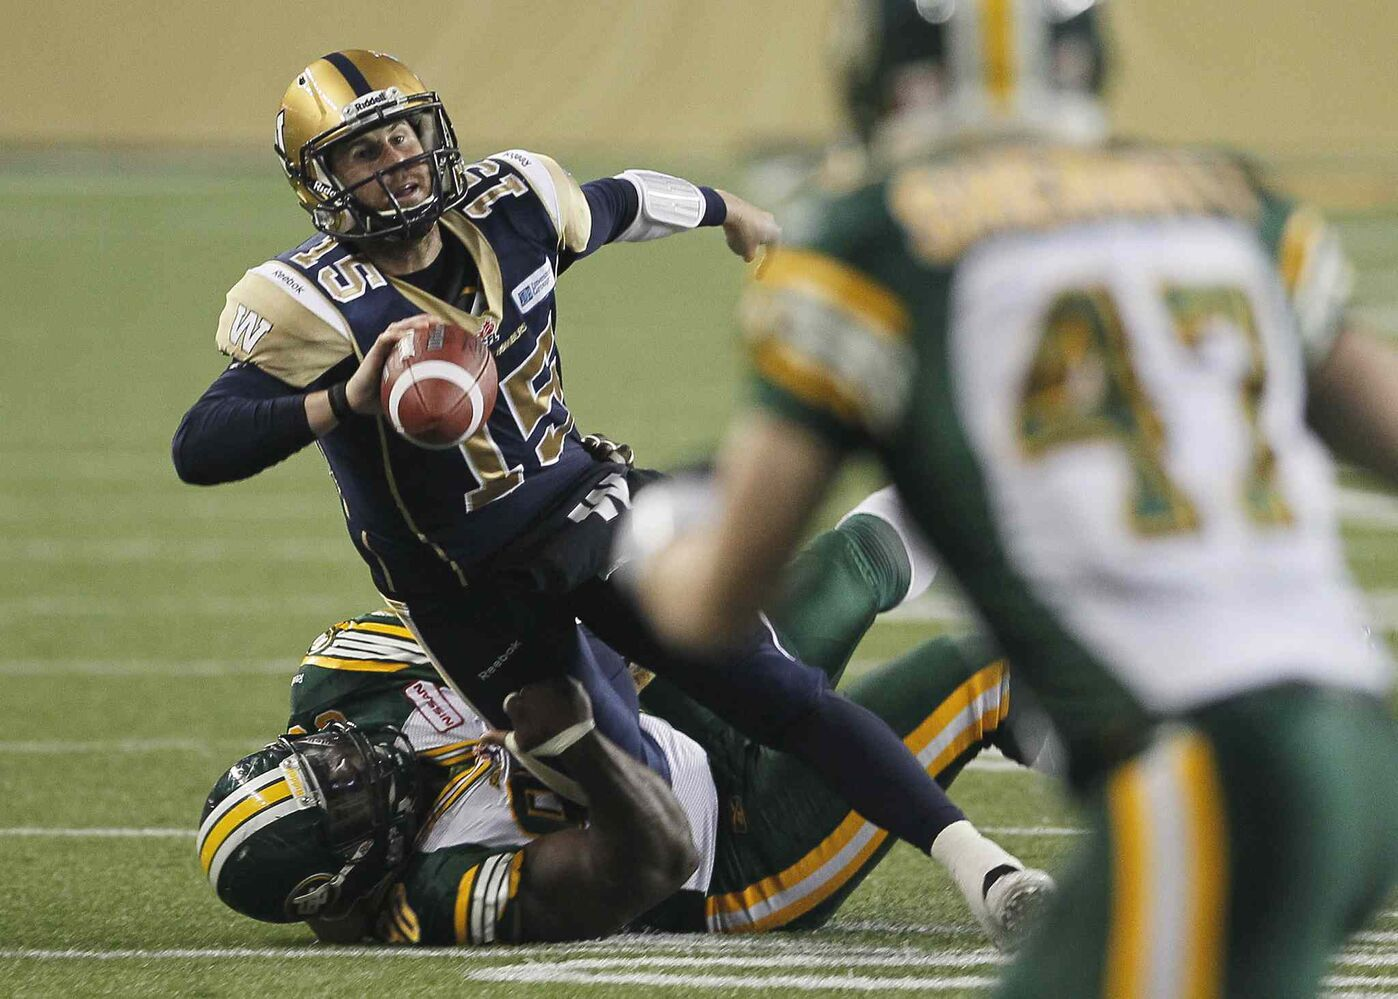 Winnipeg Blue Bombers' quarterback Max Hall (15) is sacked by Edmonton Eskimos' Almondo Sewell (90).